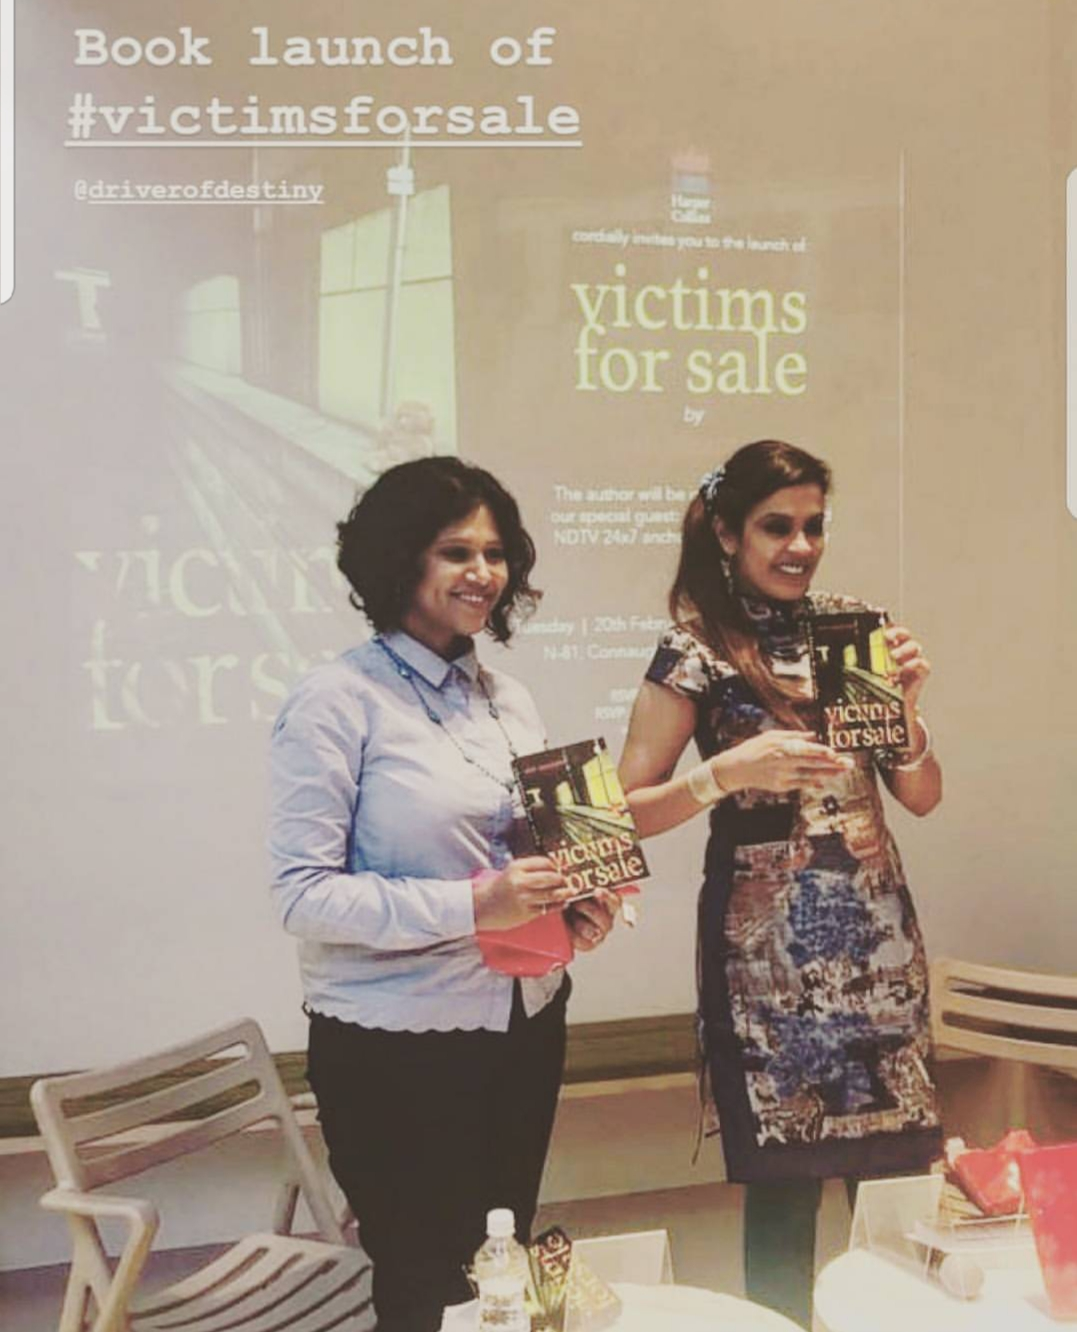 VICTIMS FOR SALE LAUNCHES IN DELHI. 2018 - A photo-op, smiling for the press after the unveiling of Victims For Sale. As seen here with NDTV anchor, author and journalist Sunetra Choudhury.KEYWORDS: Oxford Bookstores, Connaught Place, Delhi, Sunetra Choudhury, NDTV, book launch, Nish Amarnath, Nischinta Amarnath, Victims For Sale.